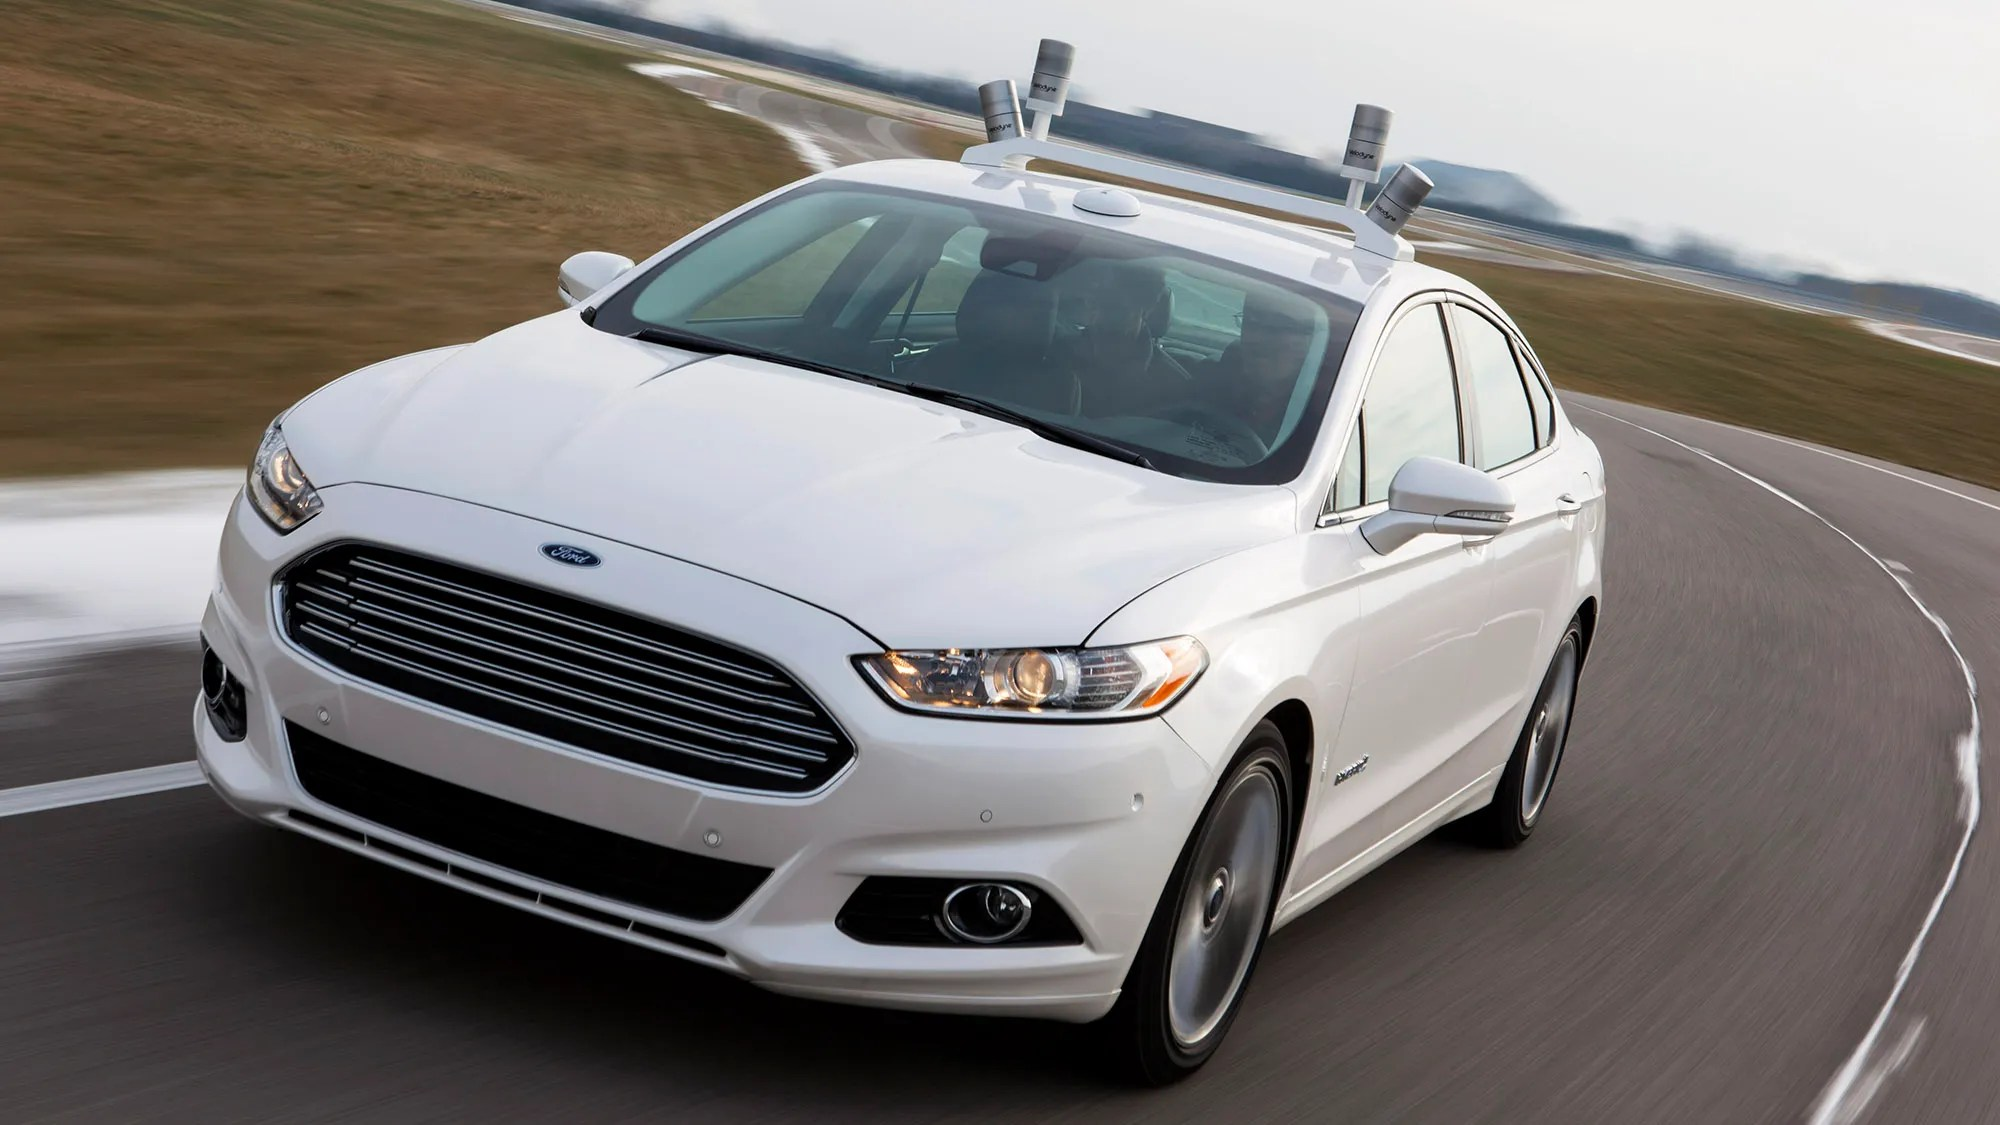 hight resolution of taking the next step in its blueprint for mobility ford today in conjunction with the university of michigan and state farm revealed a ford fusion